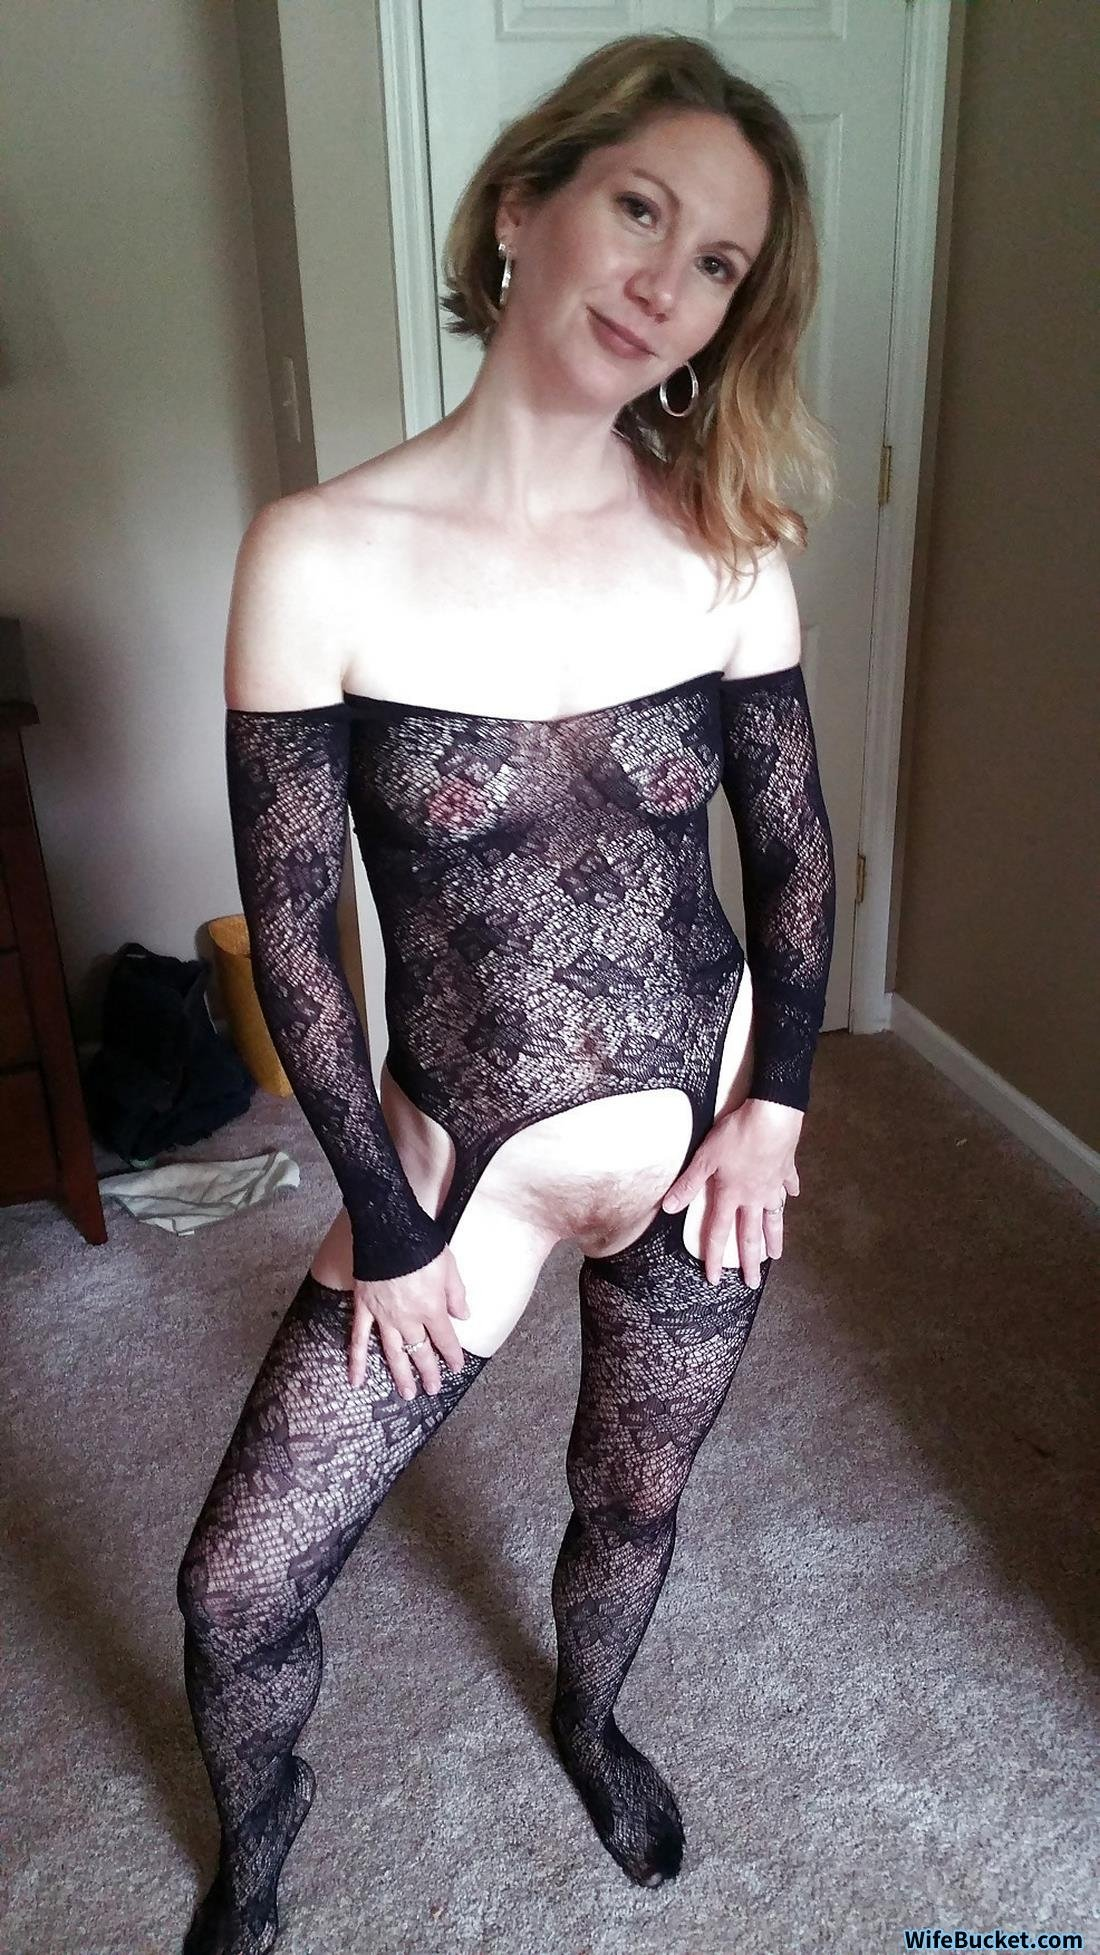 Insanely hot blonde is playing with her vagina add photo